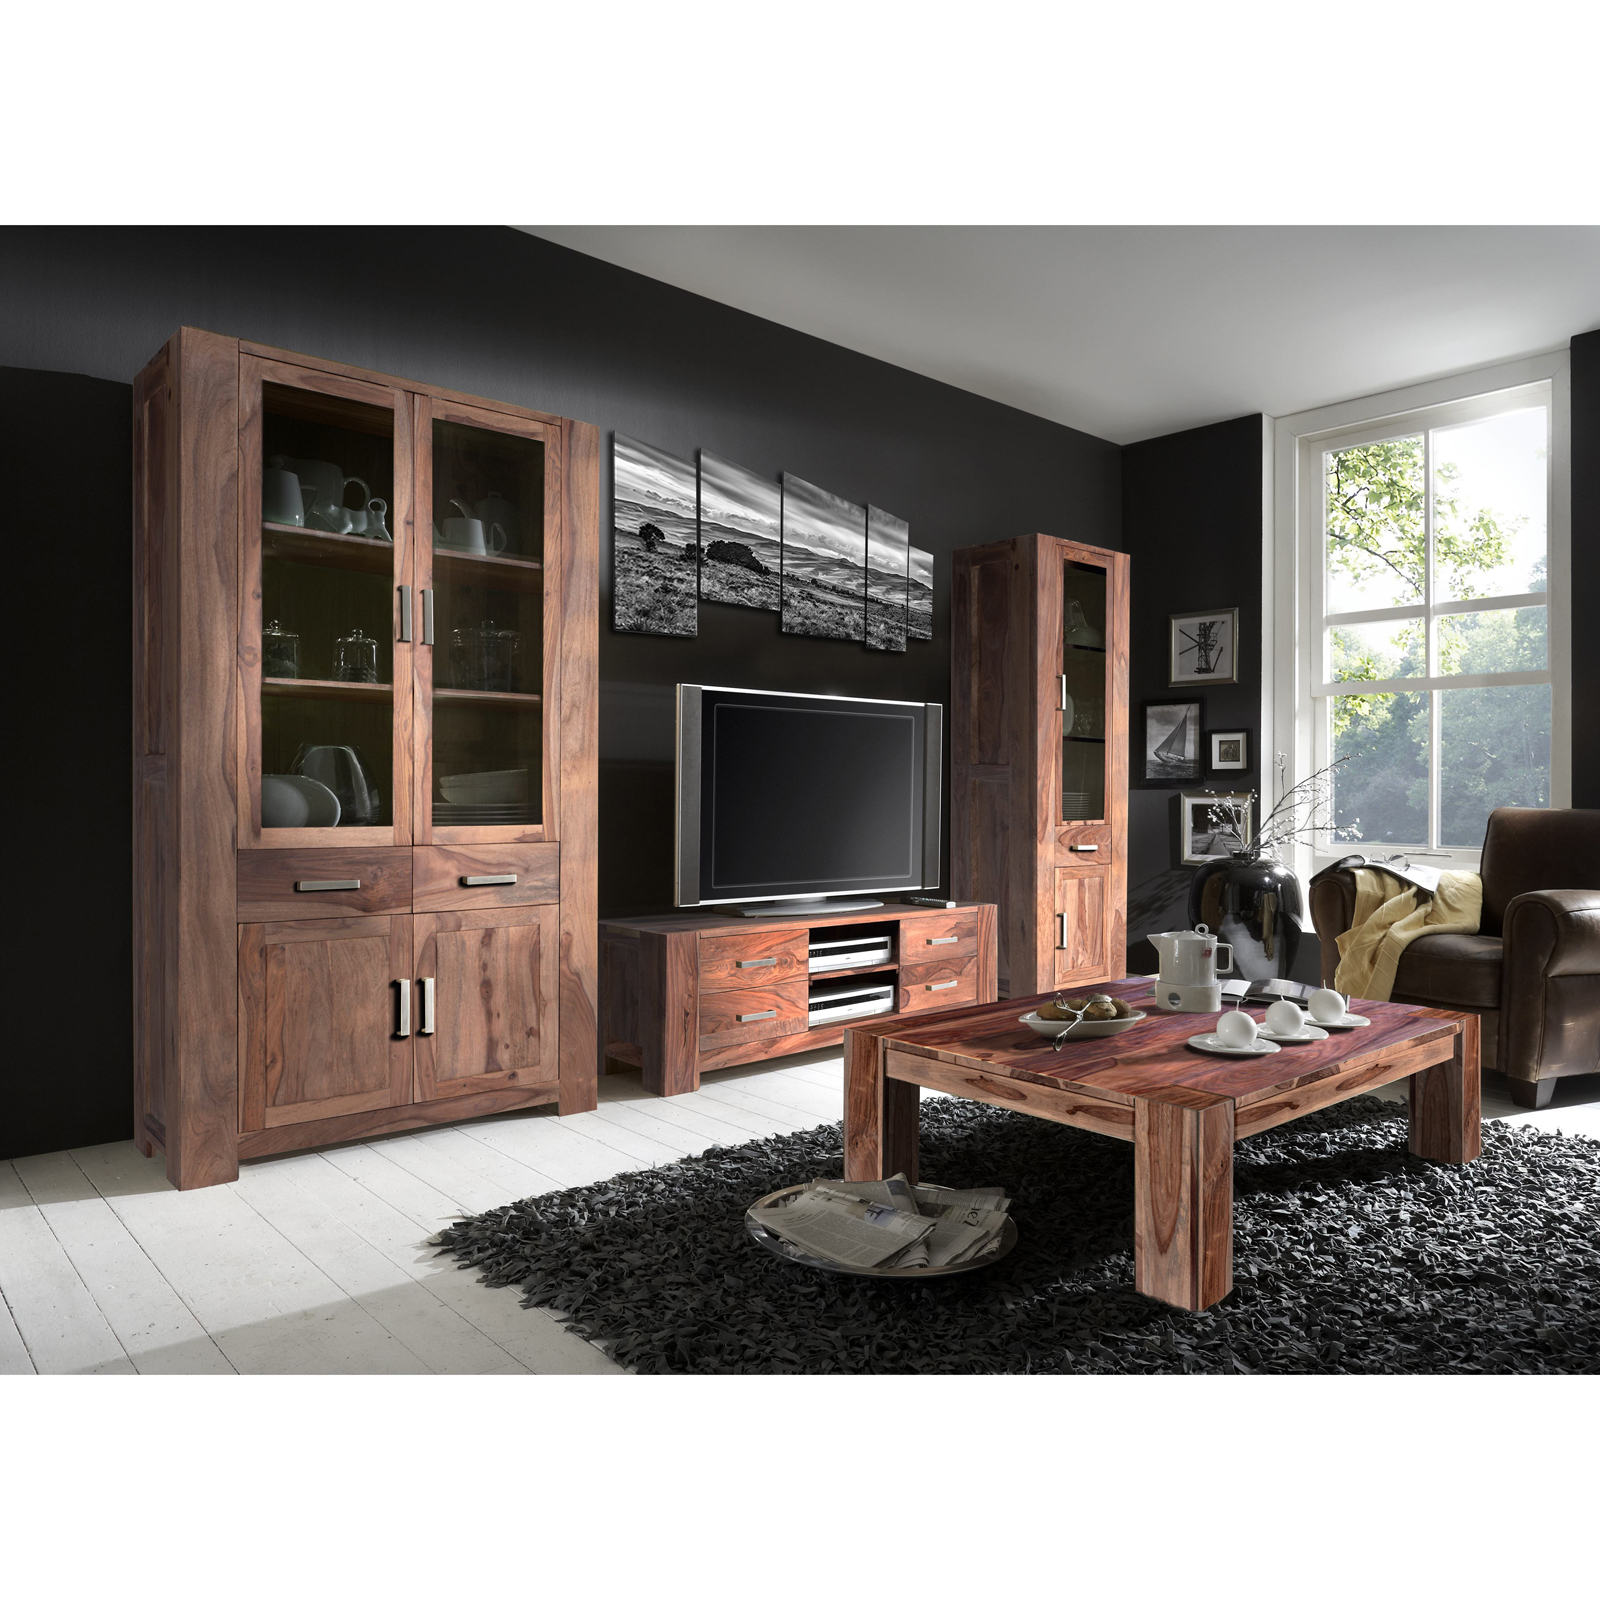 wohnzimmer set thor wohnwand und couchtisch aus massivem sheesham holz ebay. Black Bedroom Furniture Sets. Home Design Ideas